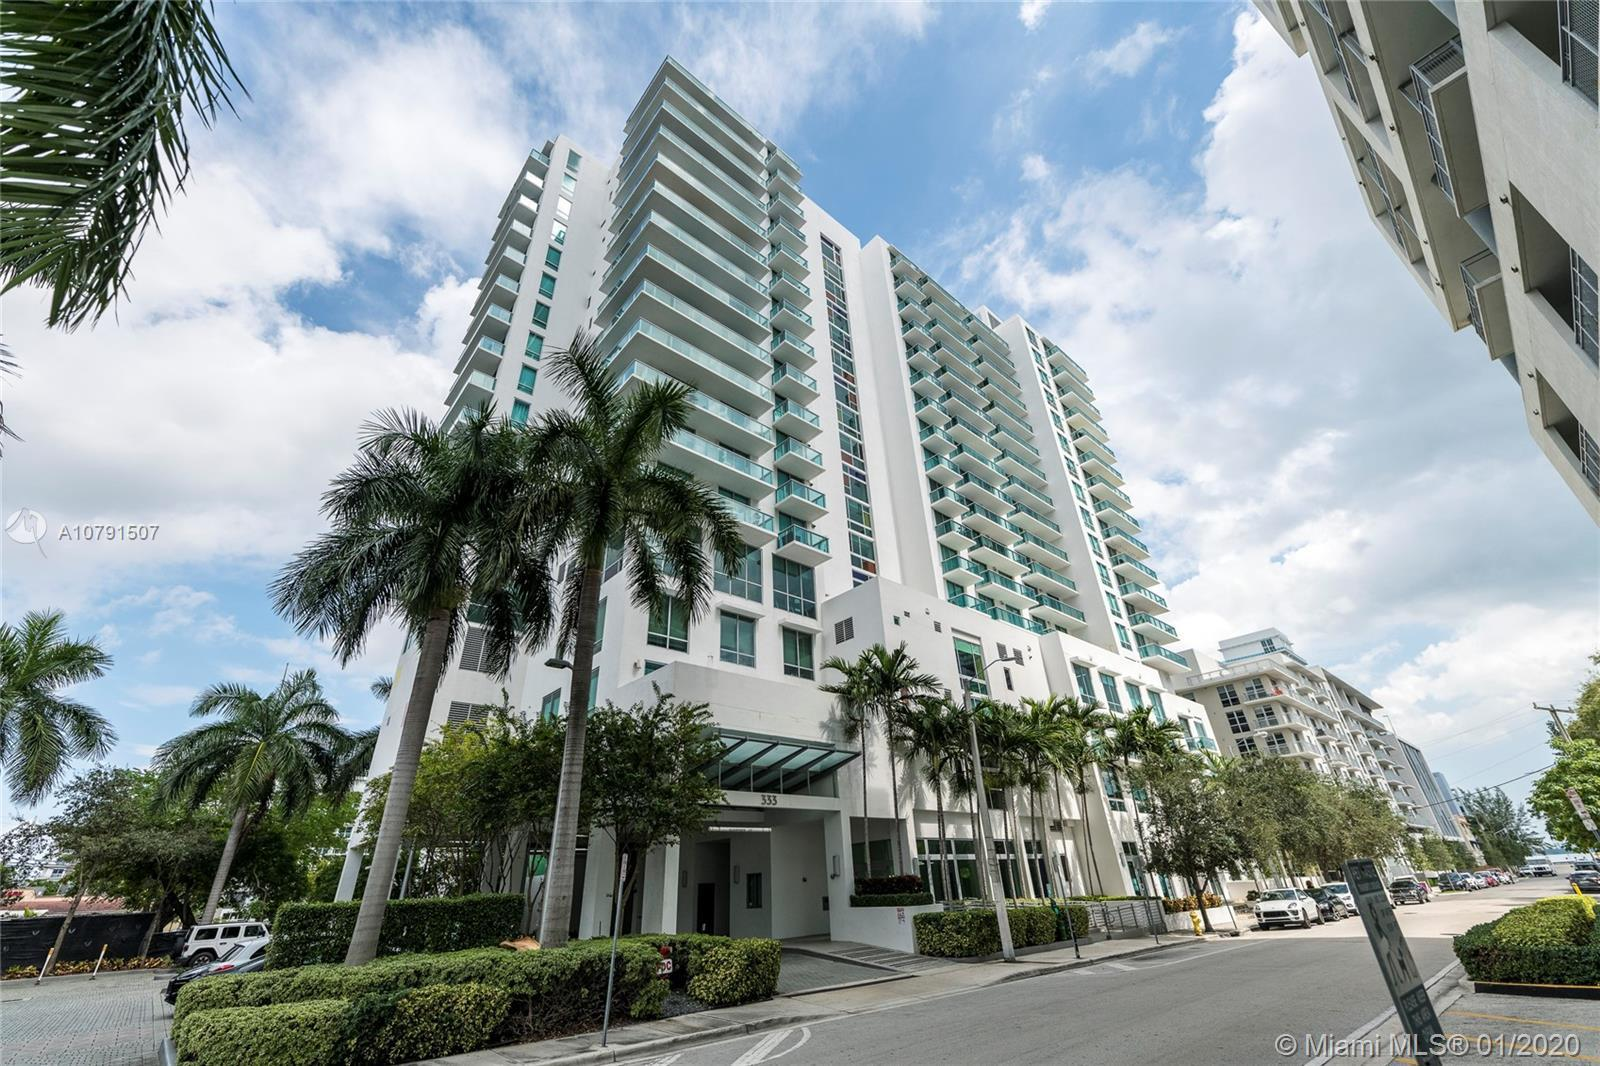 2/2 corner unit with wrap-around balcony and stunning bay views! Split layout which creates two tota